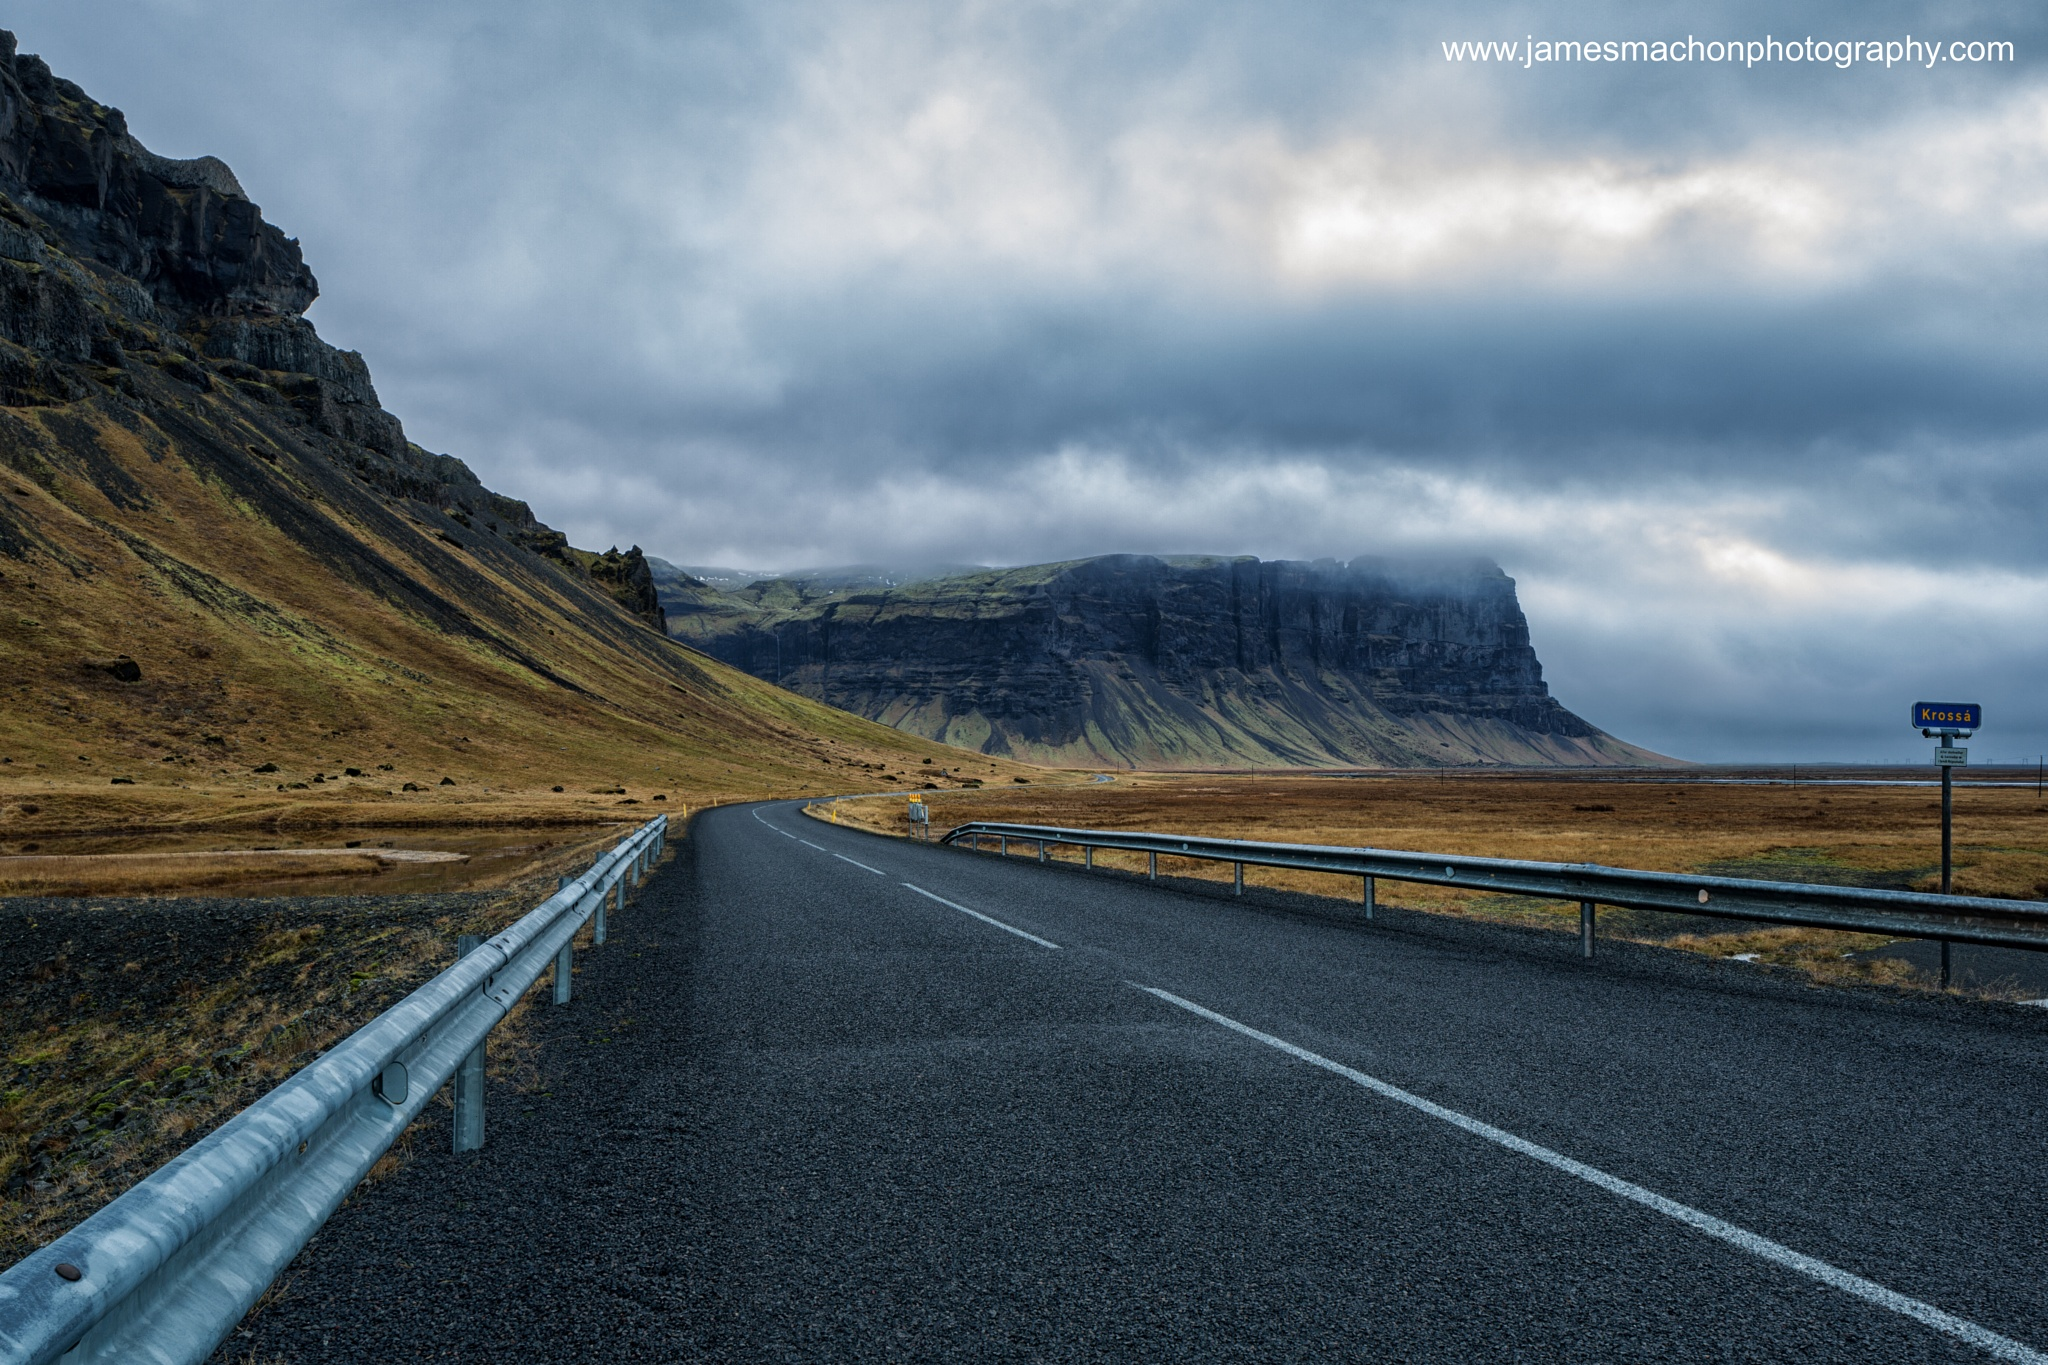 The Open Road by James Machon Photography